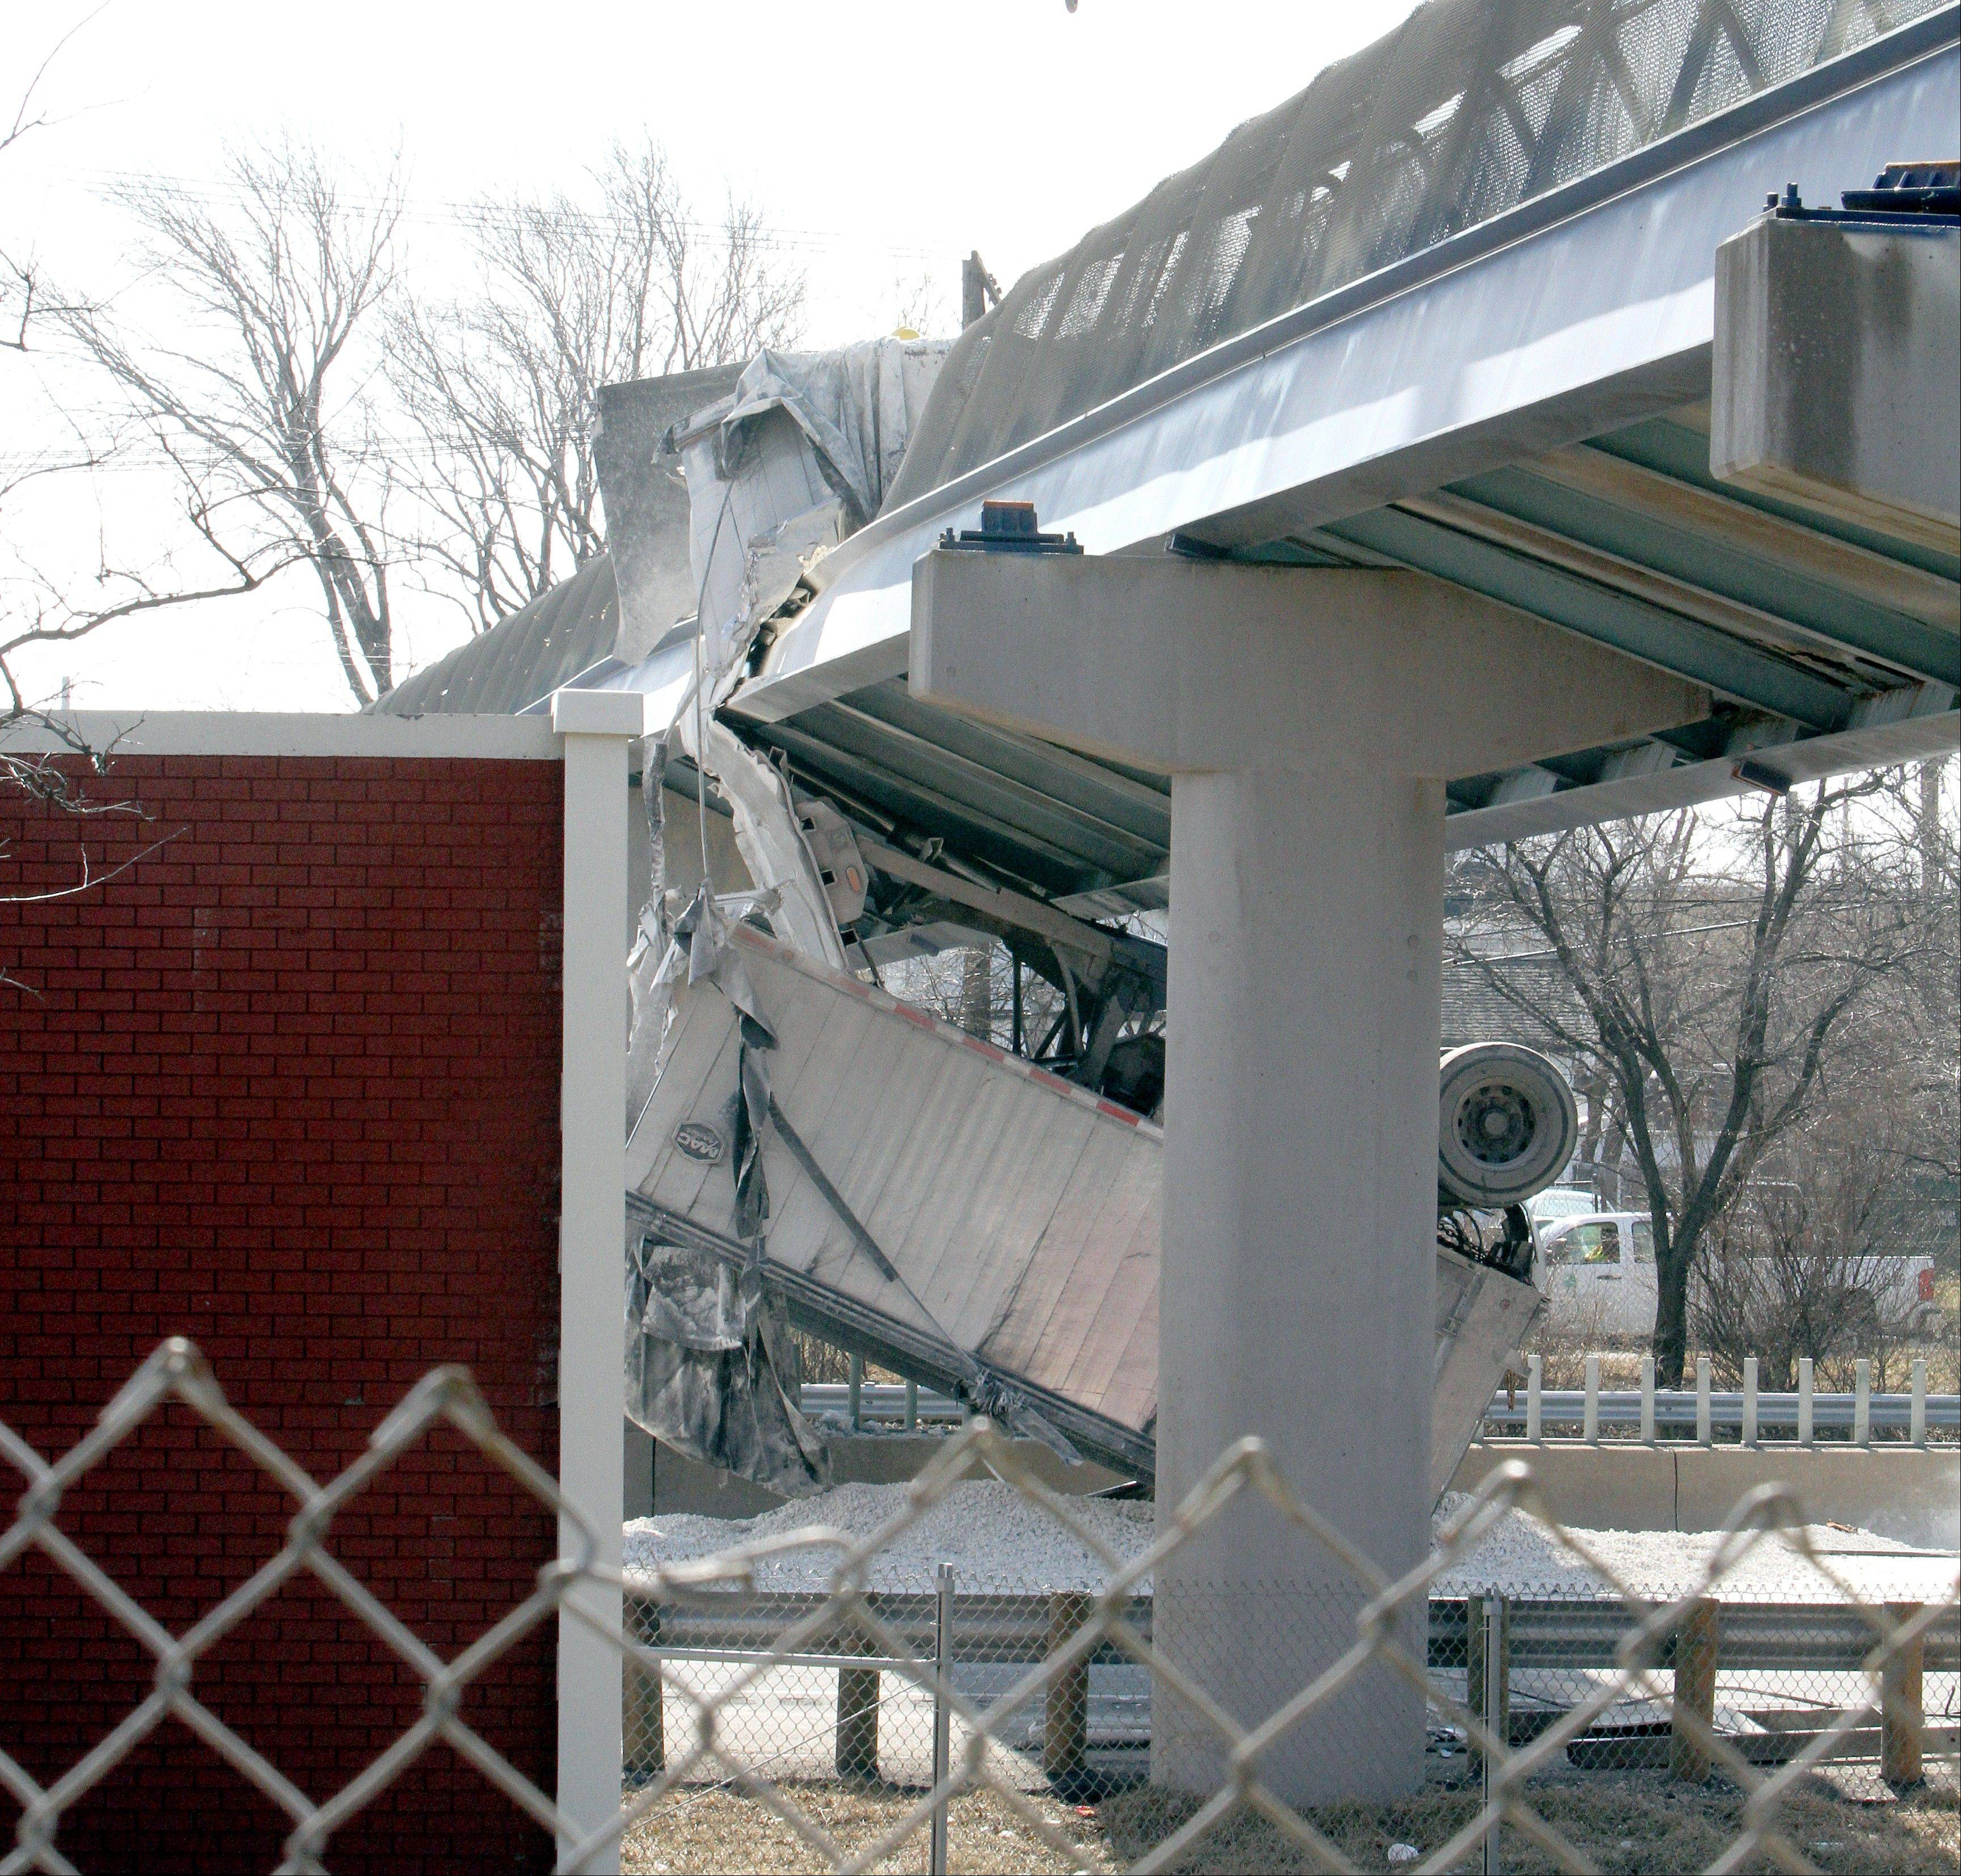 A dump truck is lodged underneath a pedestrian bridge Saturday over I-90 near E. 179 Street after its raised trailer struck the bridge, dumping its load and severely damaging the bridge.